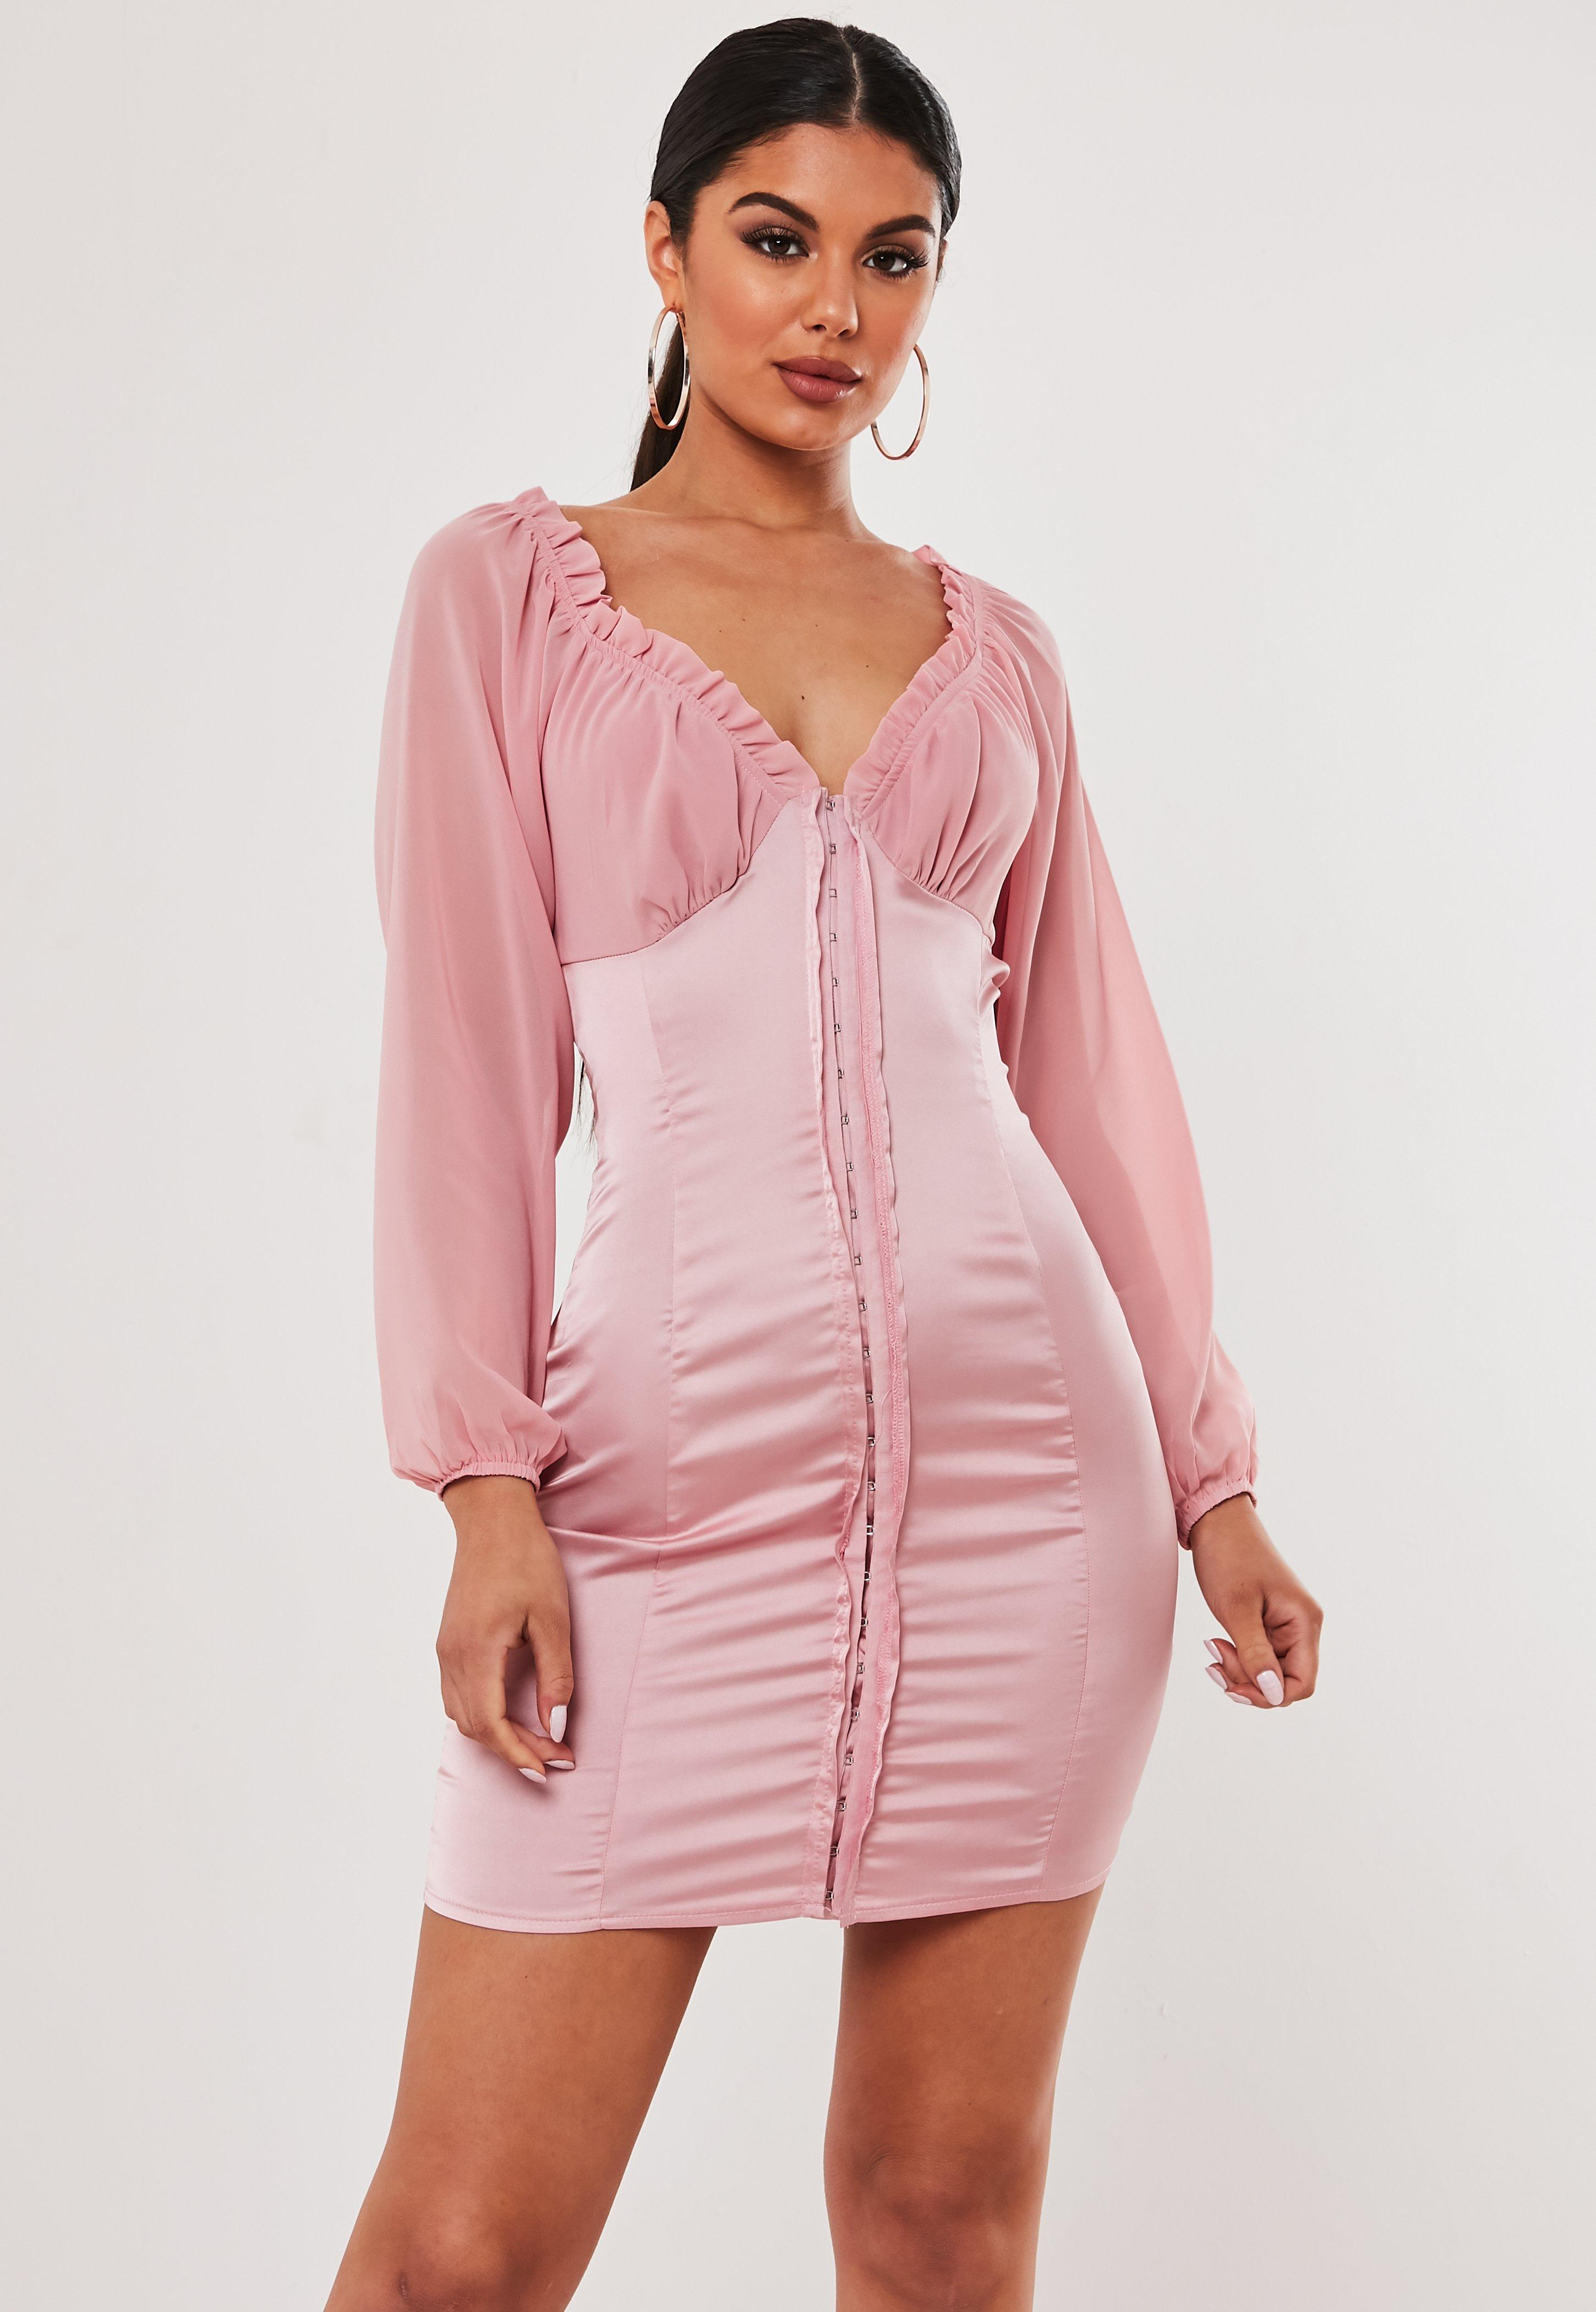 Online Online Mujer Online Mujer Missguided VestidosDe VestidosDe VestidosDe Missguided Missguided Mujer redoCxBQWE